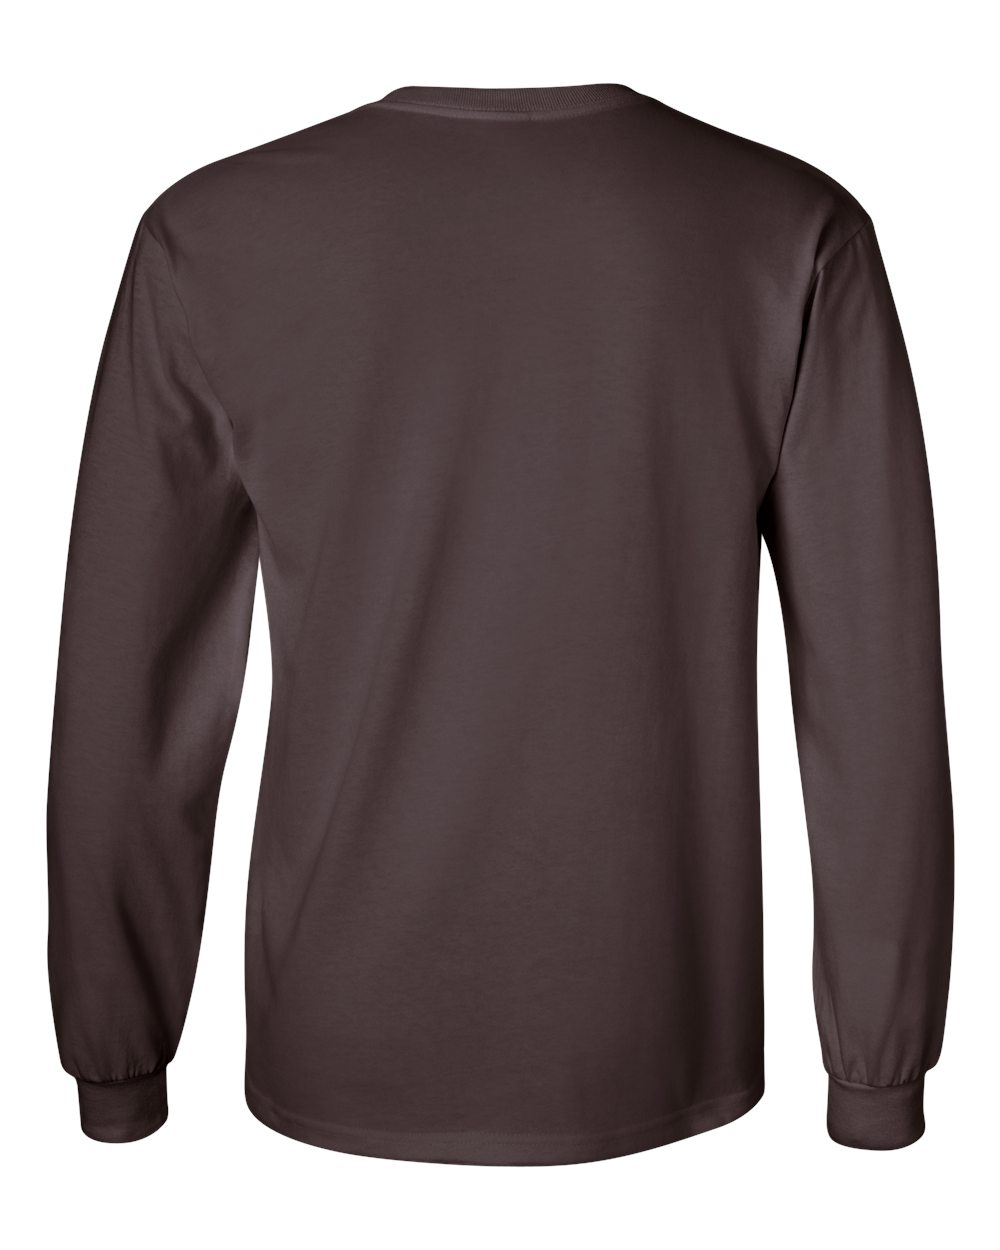 Gildan-Men-039-s-Ultra-Cotton-6-oz-Long-Sleeve-T-Shirt-G240-S-5XL thumbnail 24